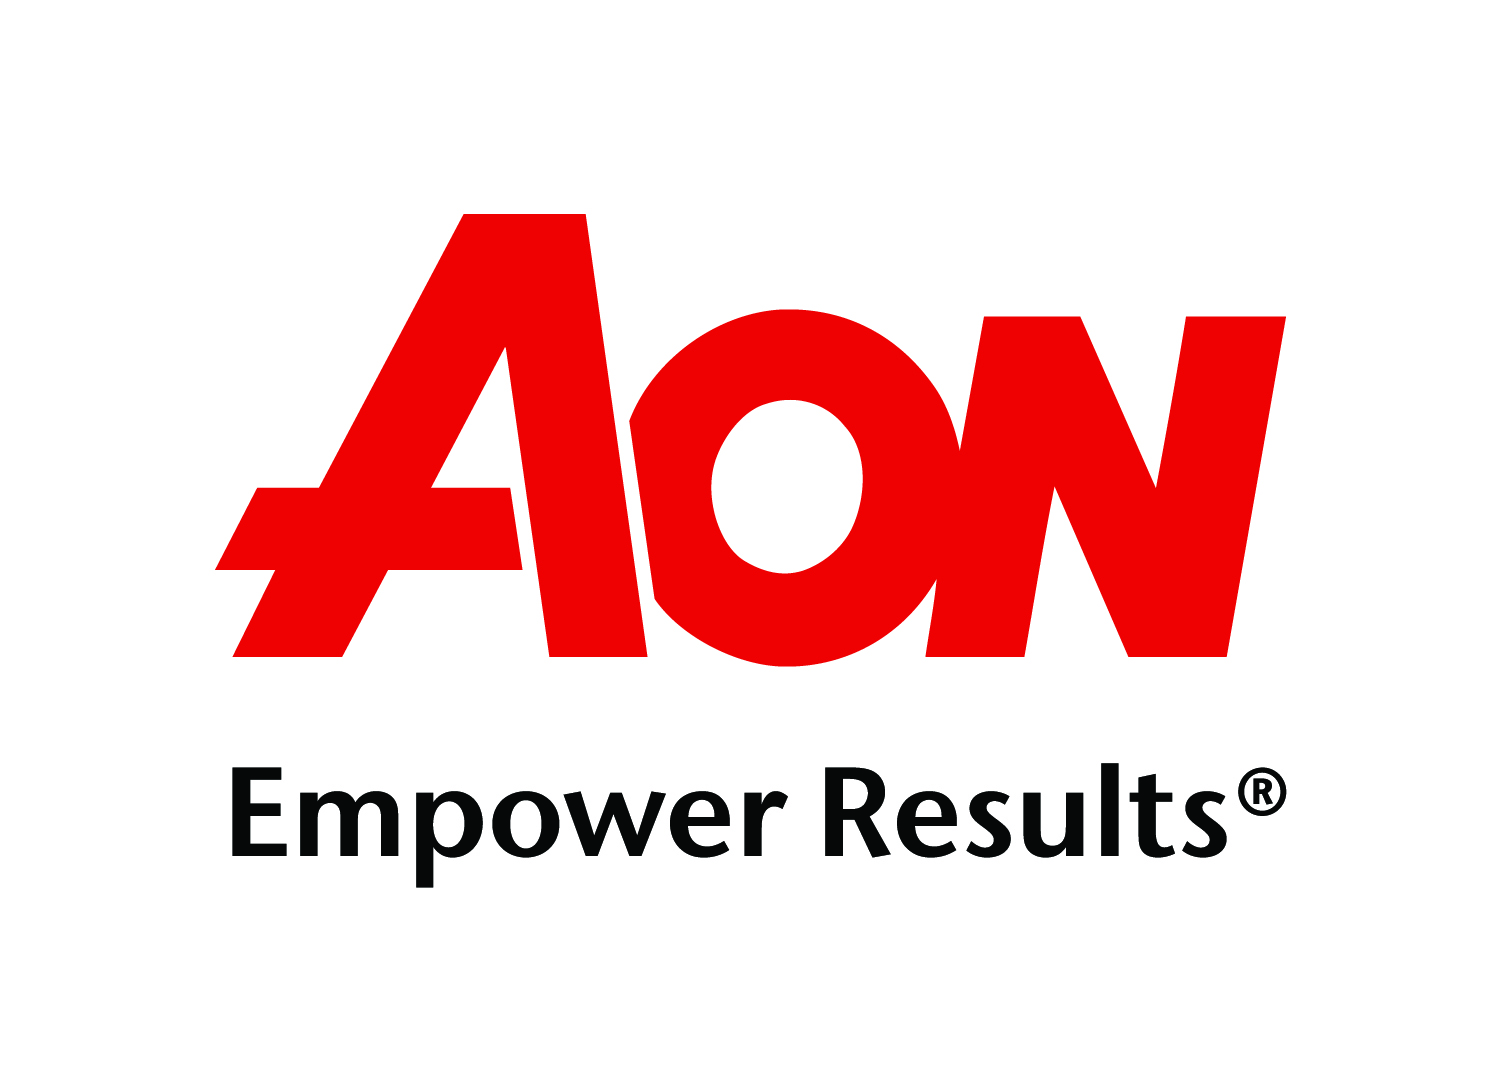 https://www.aon.com/home/index.html